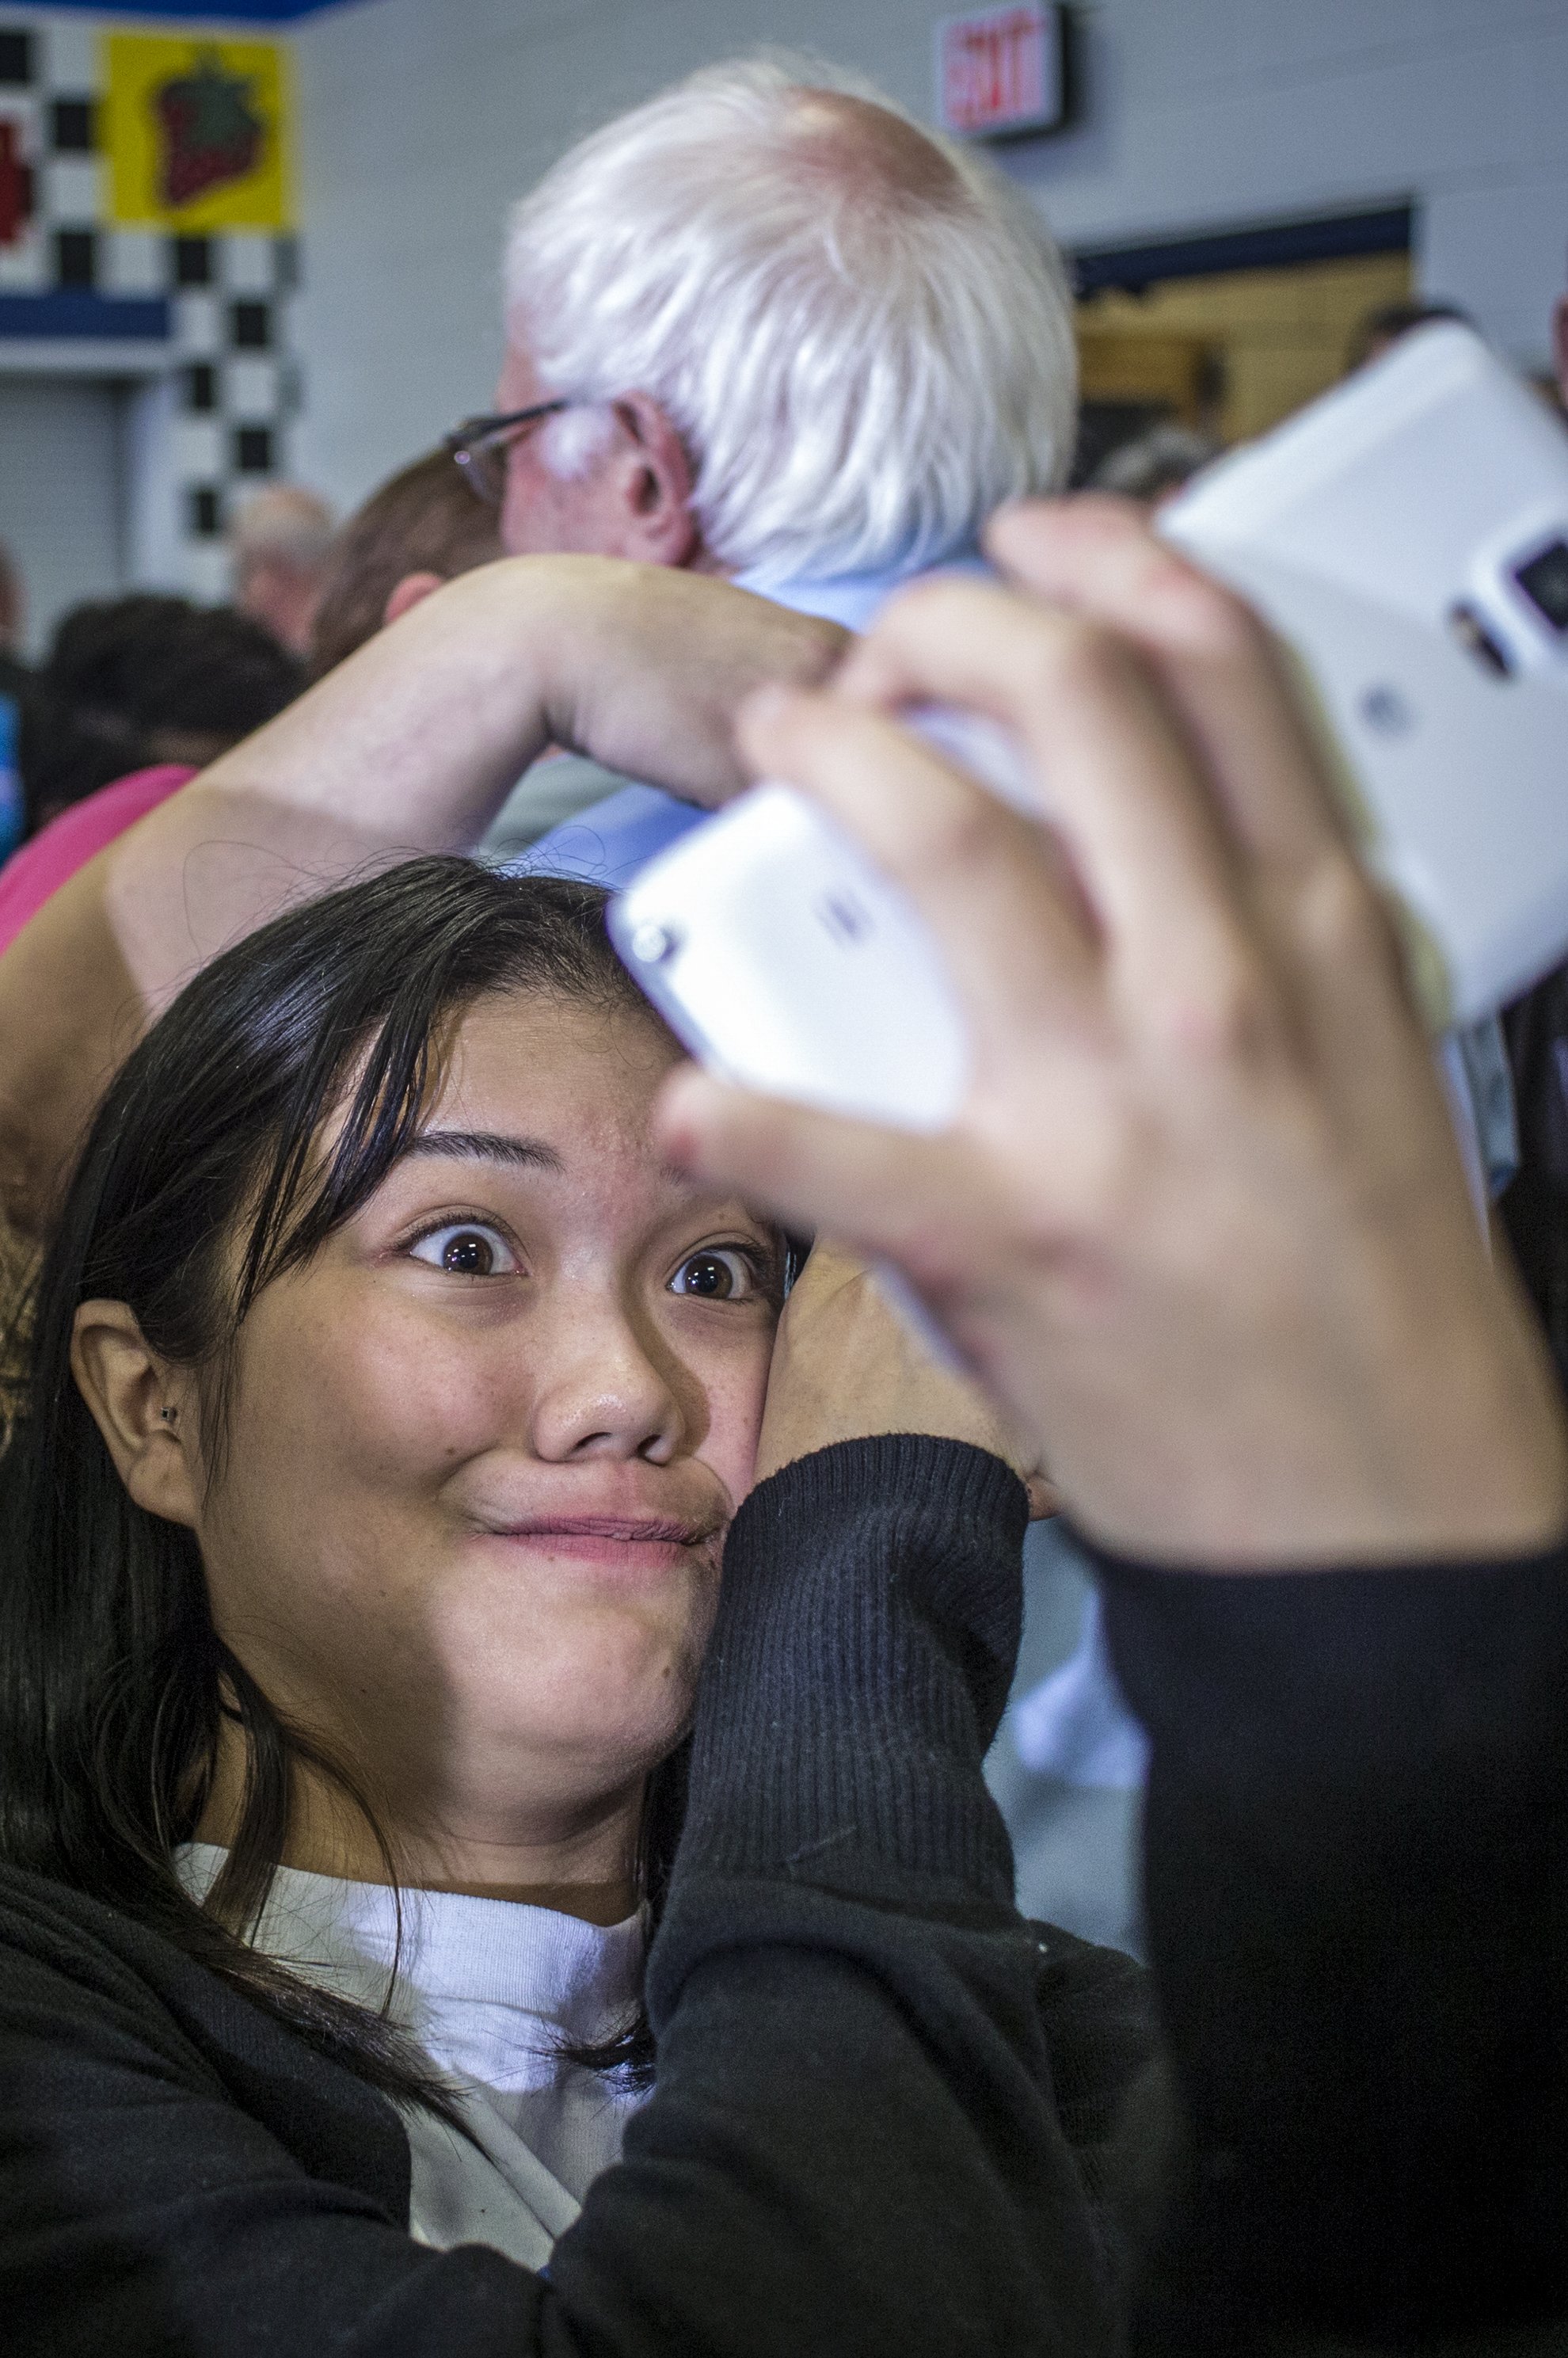 Linn-Mar junior Angel Trachta, 16, takes a selfie behind presidential hopeful Bernie Sanders after a campaign stop at Strawberry Hill Elementary in Anamosa, Iowa, Saturday, Dec. 12, 2015. Vermont Sen. Bernie Sanders made a campaign stop in Anamosa to hold a forum on racial justice and prison reform.